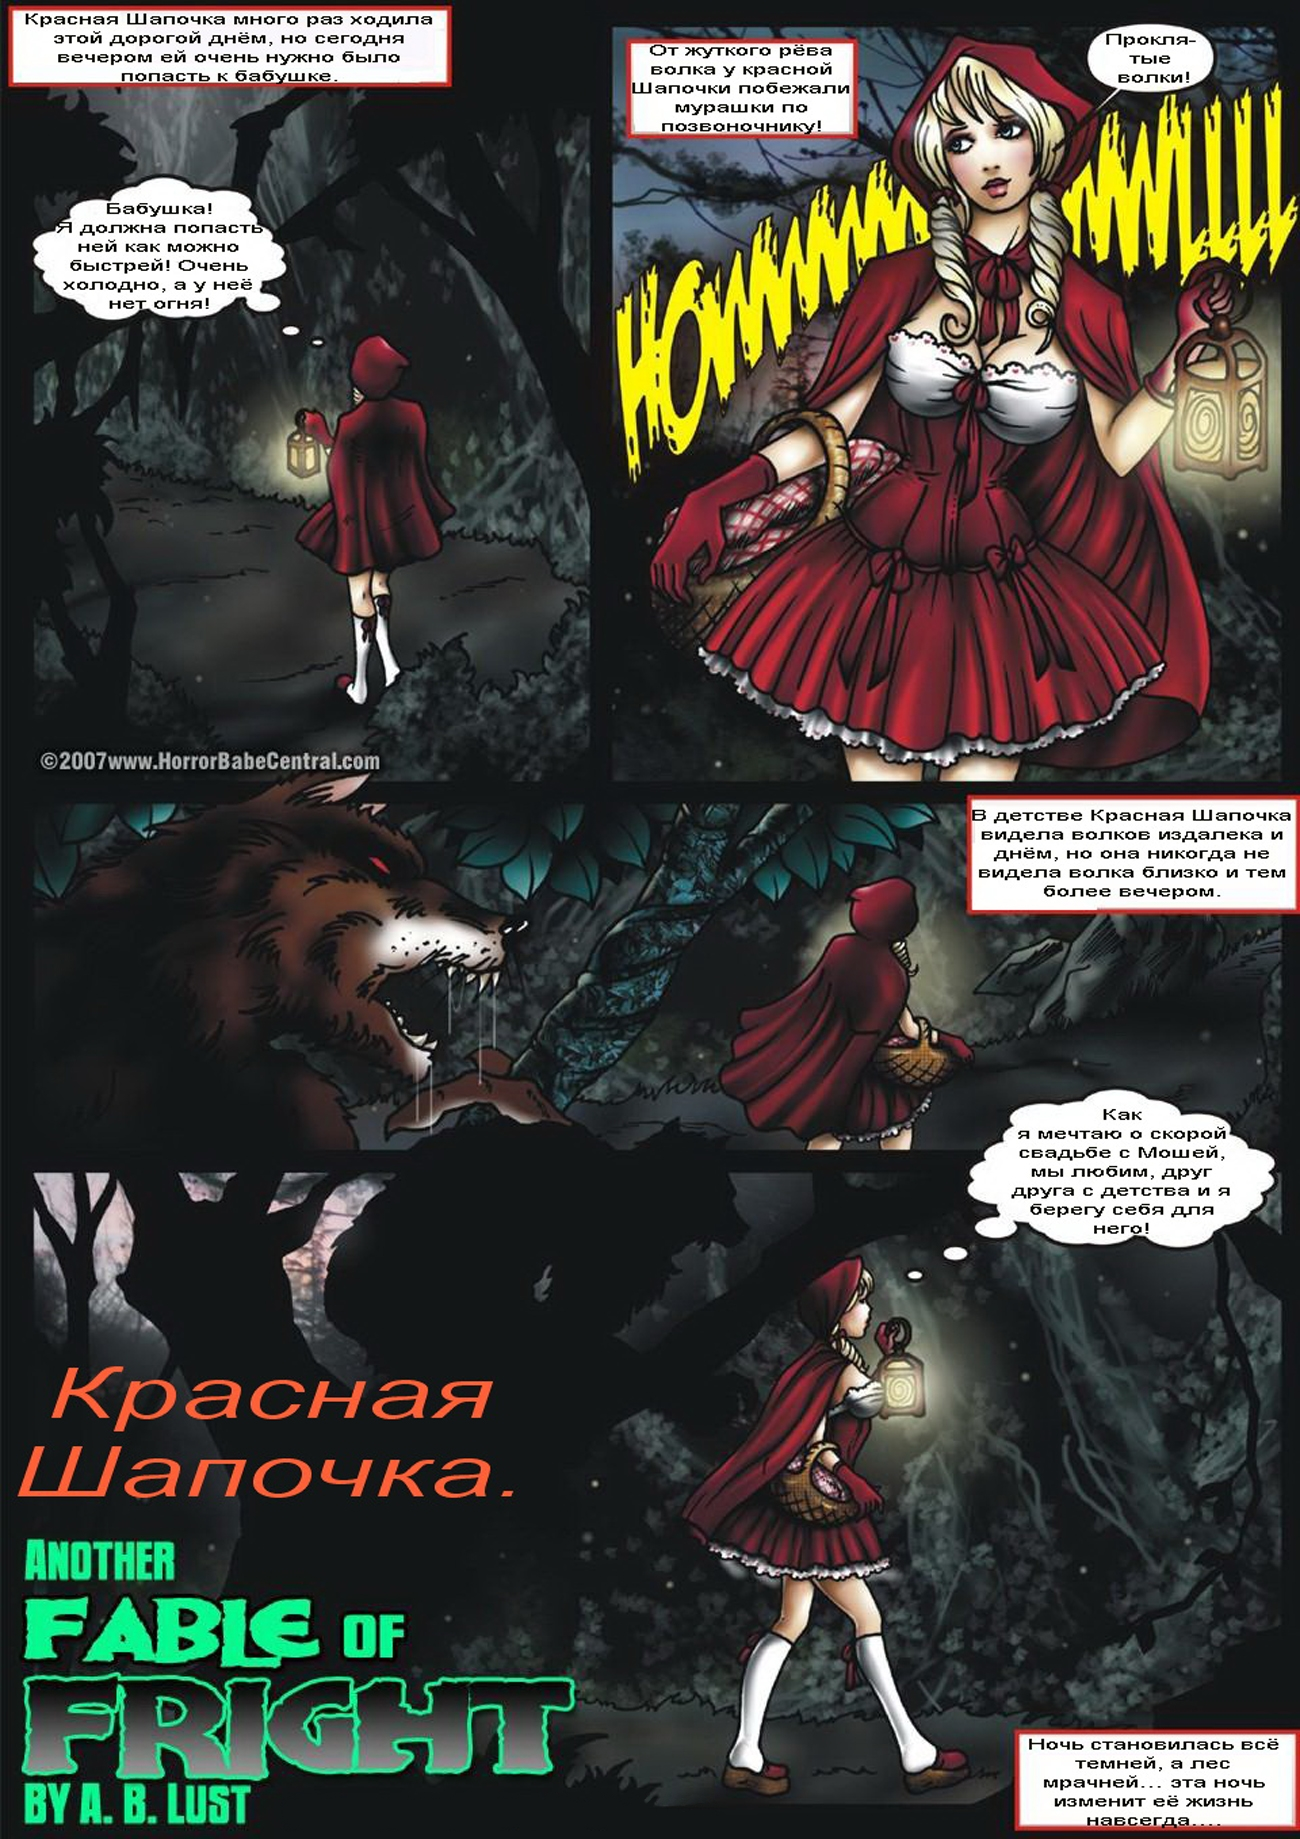 SureFap xxx porno Little Red Riding Hood - [A.B. Lust] - Another Fable Of Fright - Иная Басня Испуга